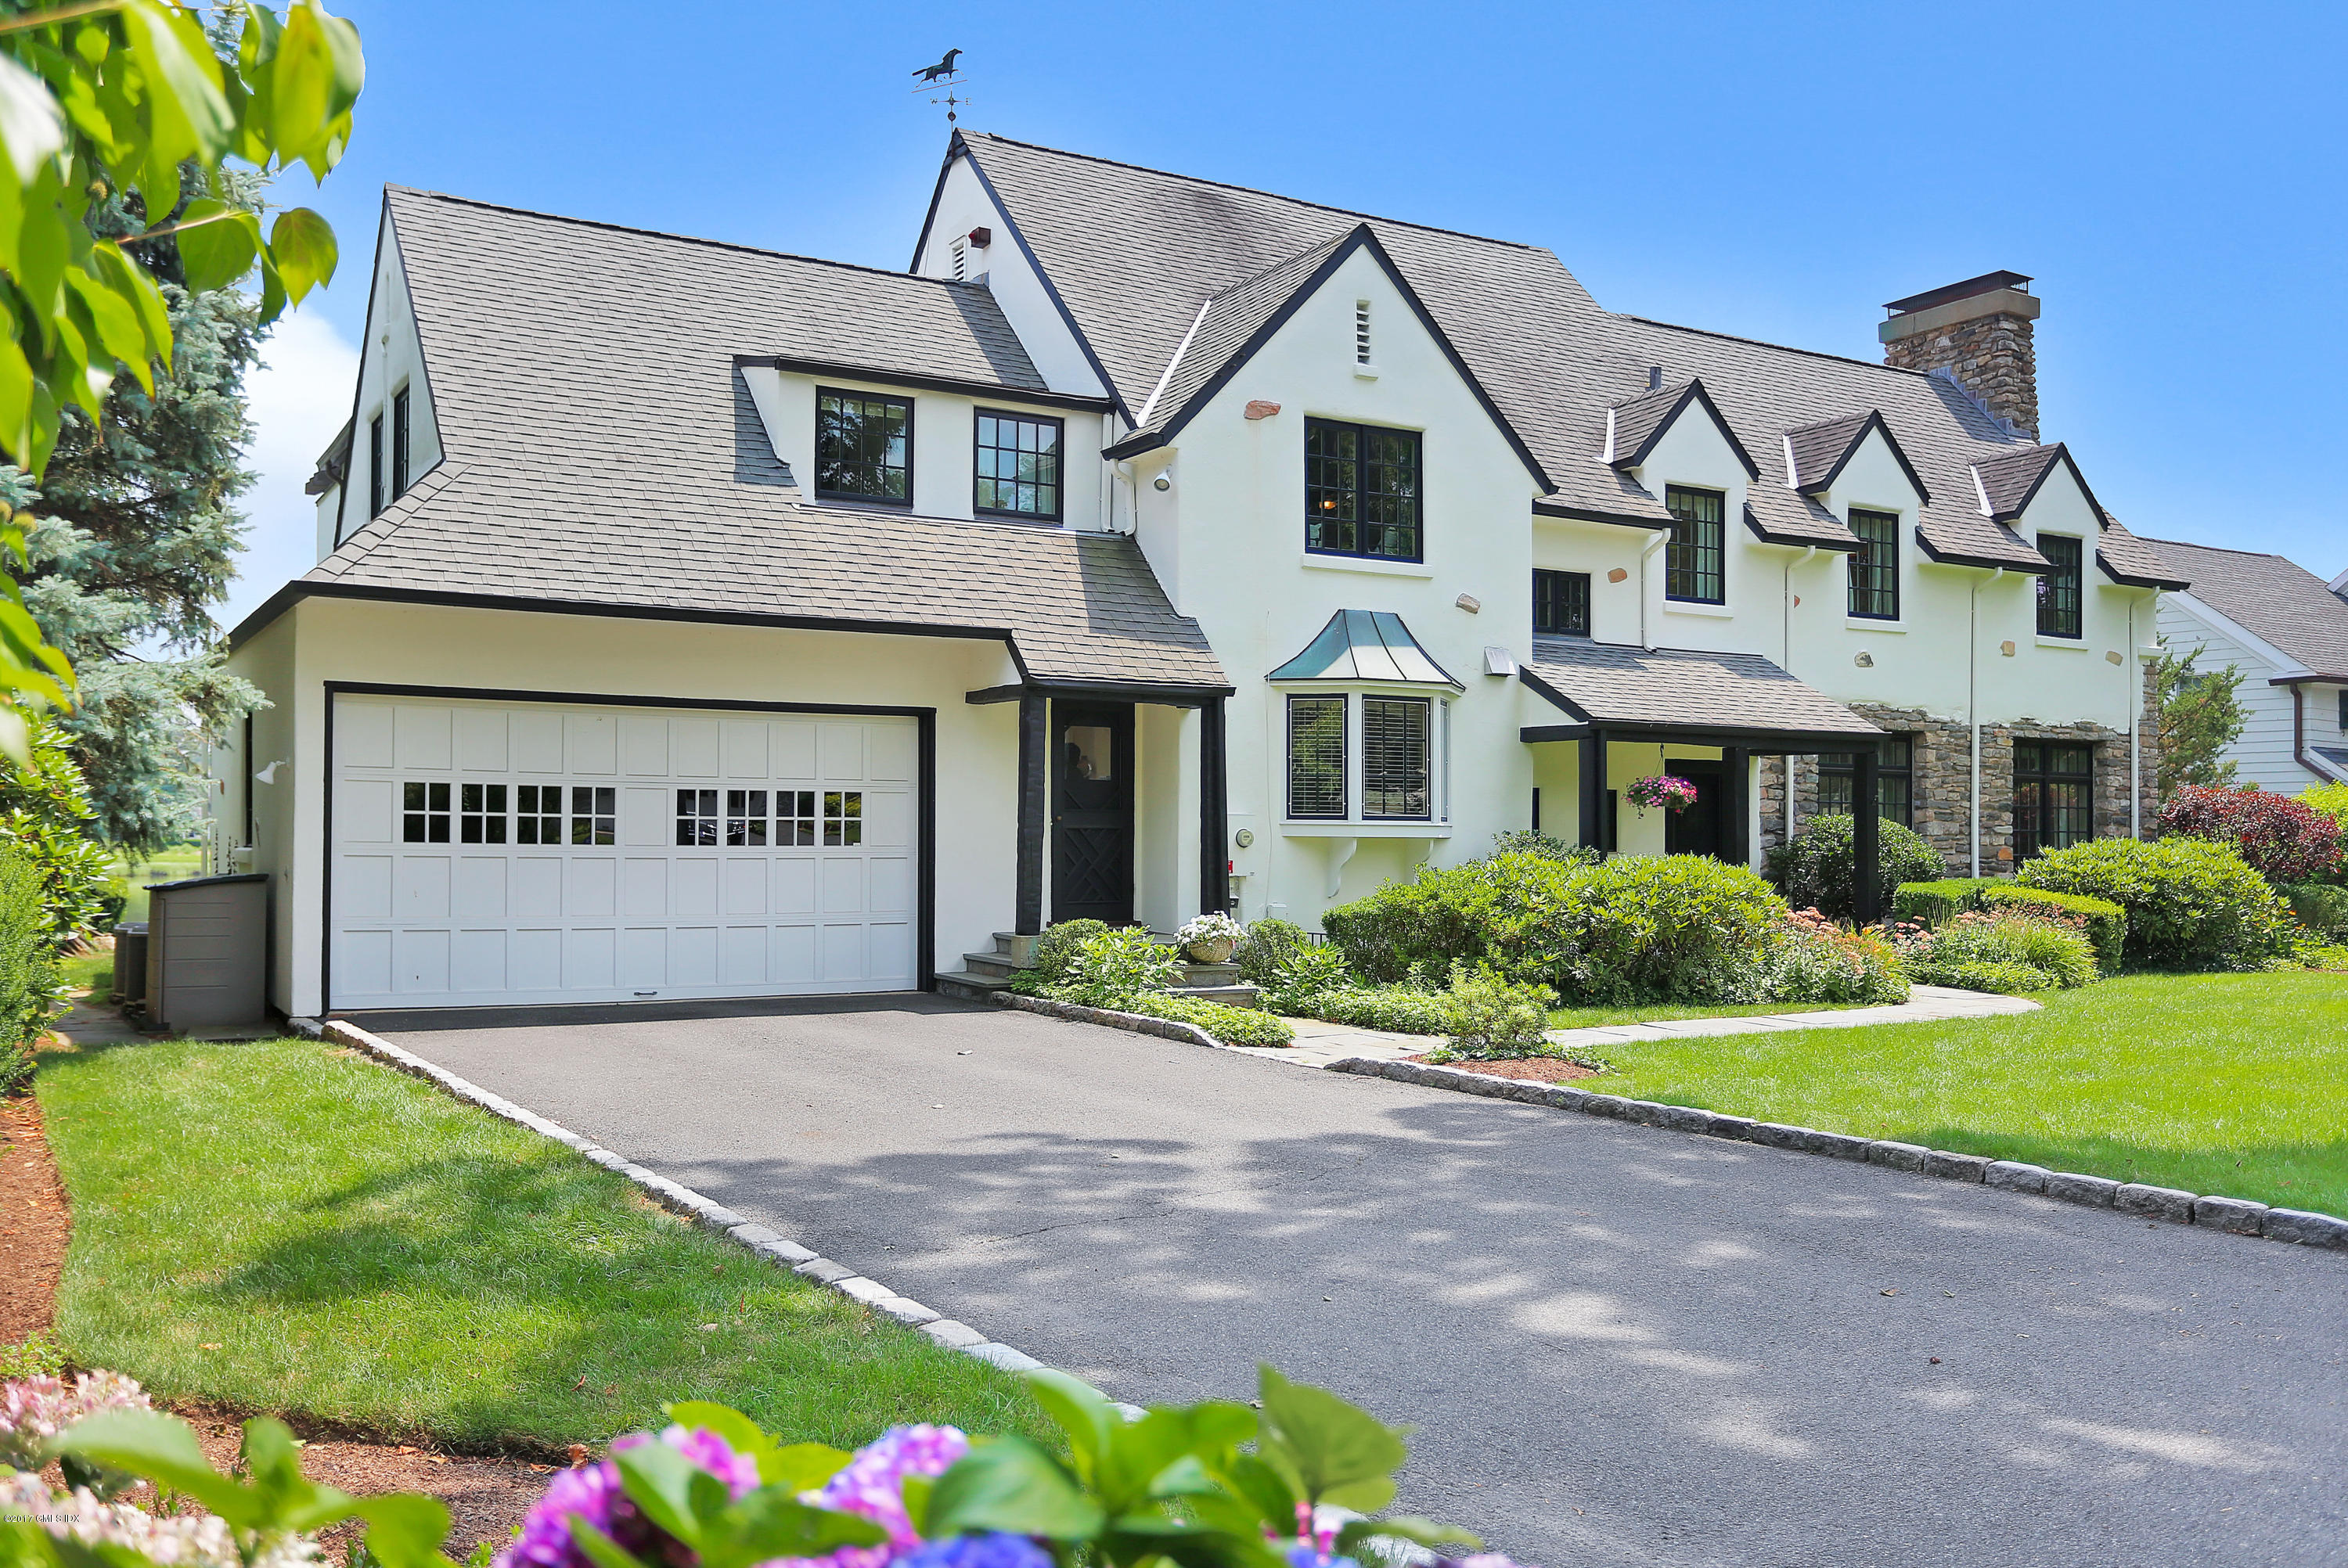 33 Willowmere Circle,Riverside,Connecticut 06878,5 Bedrooms Bedrooms,3 BathroomsBathrooms,Single family,Willowmere,106016